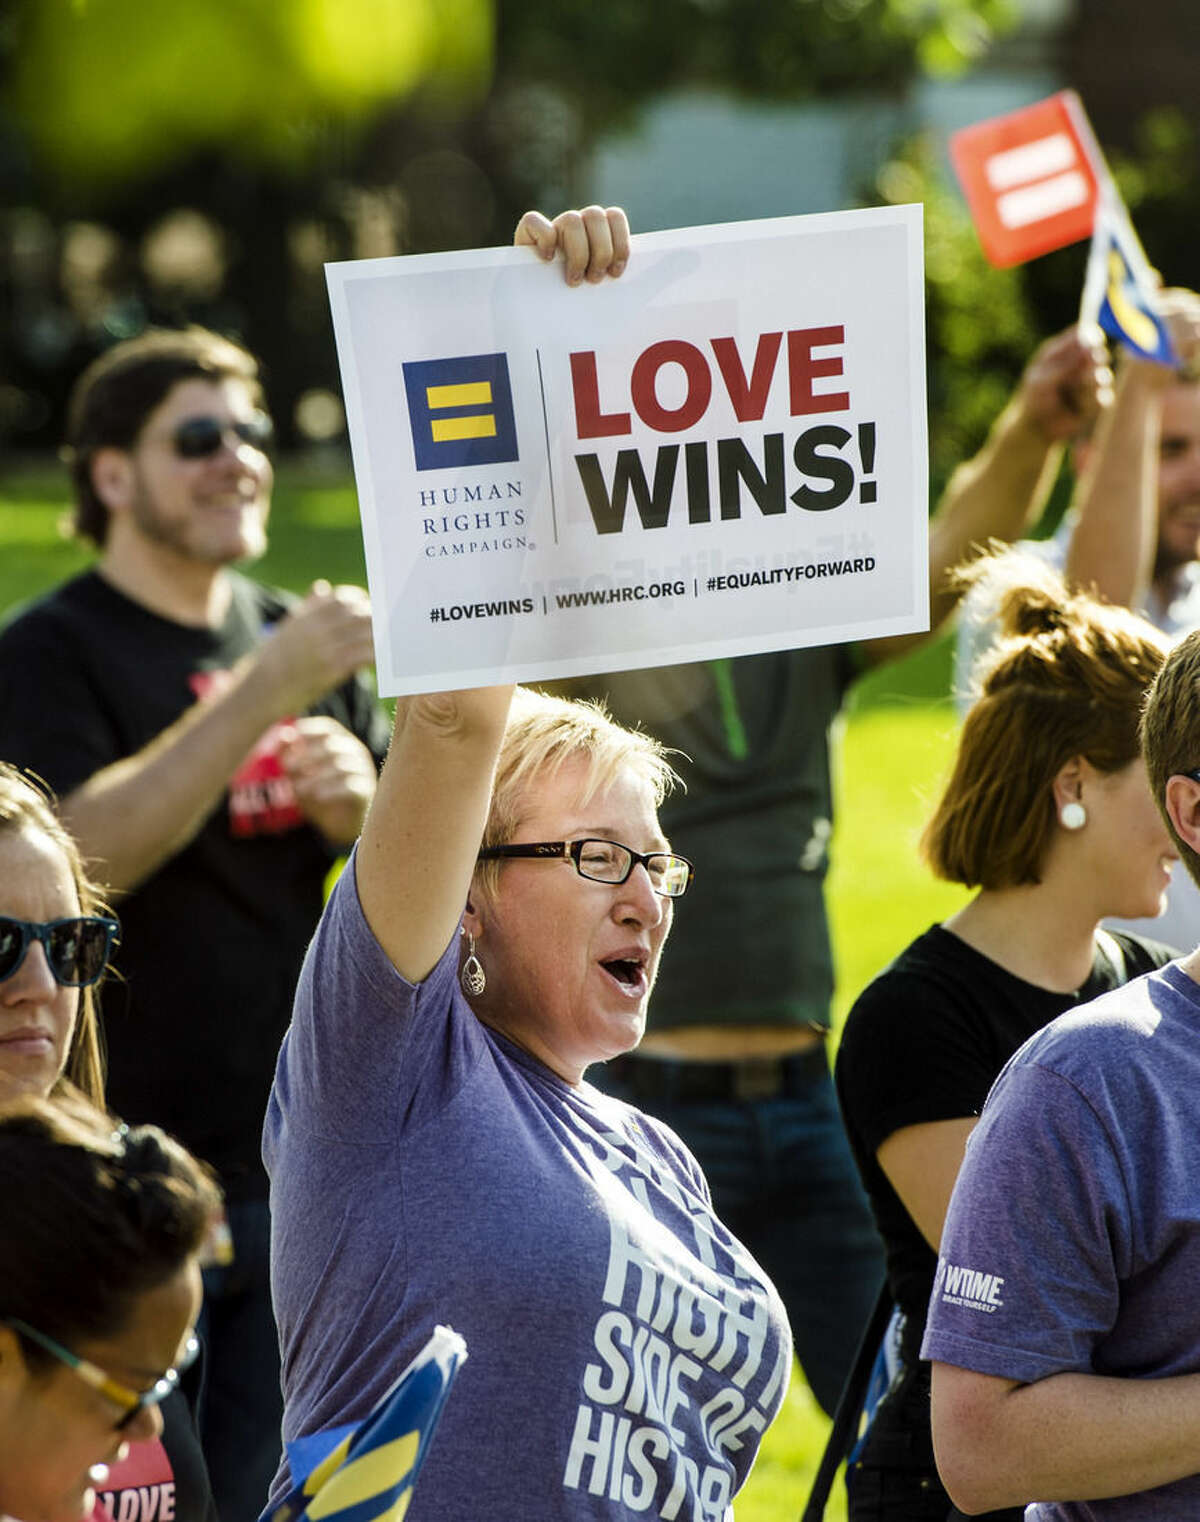 Tracy White, of Kansas City, Mo., celebrates after the Supreme Court declared that same-sex couples have a right to marry anywhere in the United States, at Ilus E. Davis Park in Kansas City, Mo., Friday, June 26, 2015(Allison Long/The Kansas City Star via AP)